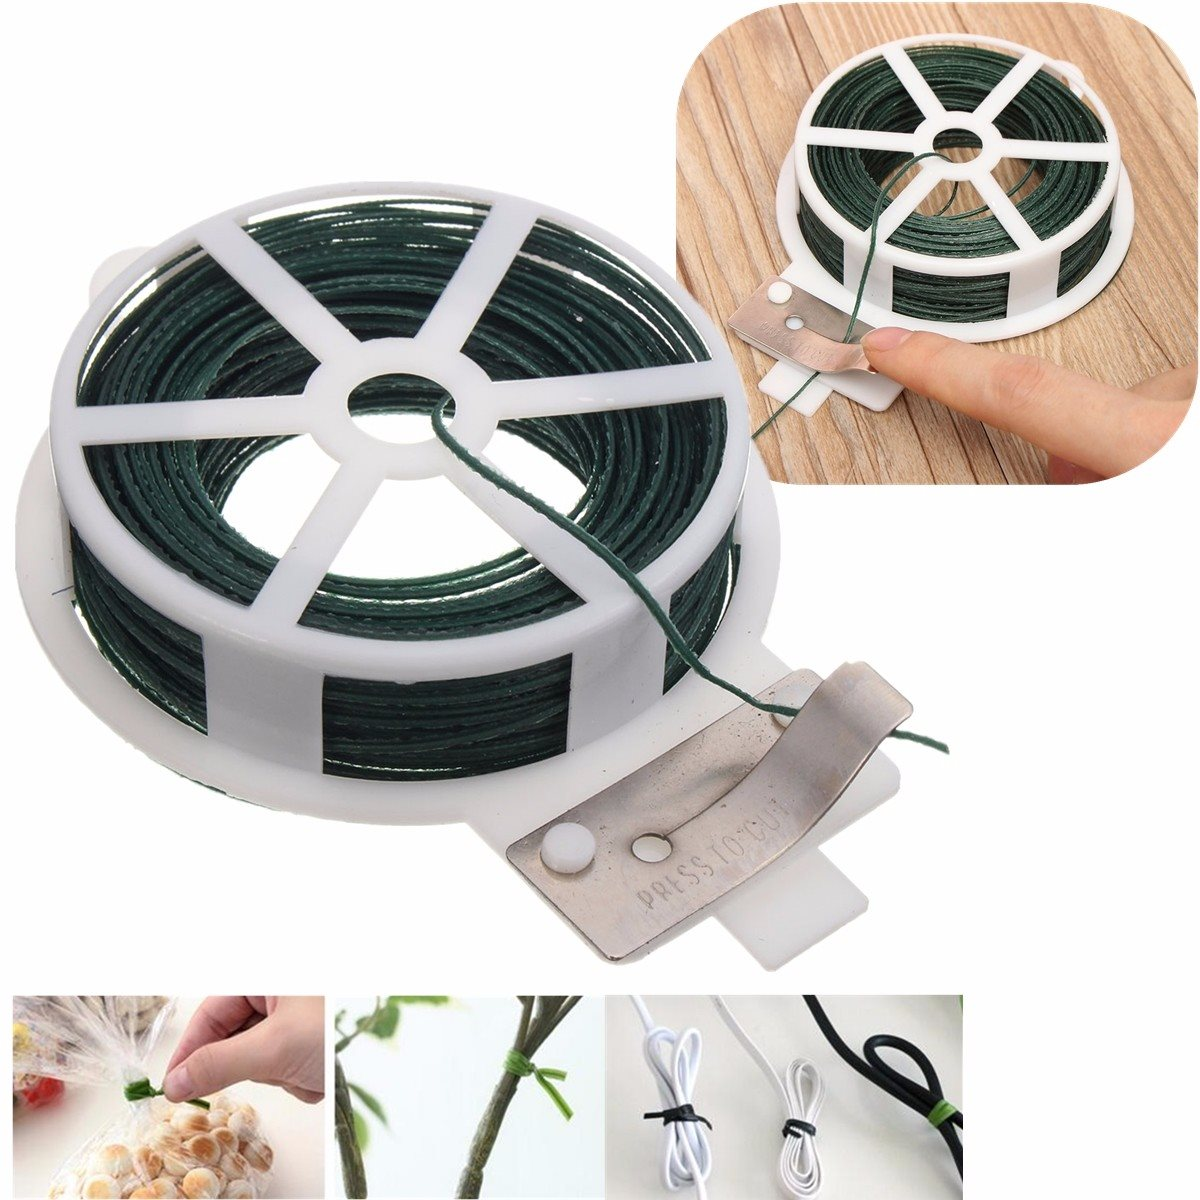 Generous Tsb Lookup Big Coil Tap Wiring Rectangular Bulldog Security Com One Humbucker One Volume Wiring Young How To Install Bulldog Remote Start BlueBulldog Remote Starter Installation Awesome Tie Wire Reel Belt Contemporary   Electrical Circuit ..